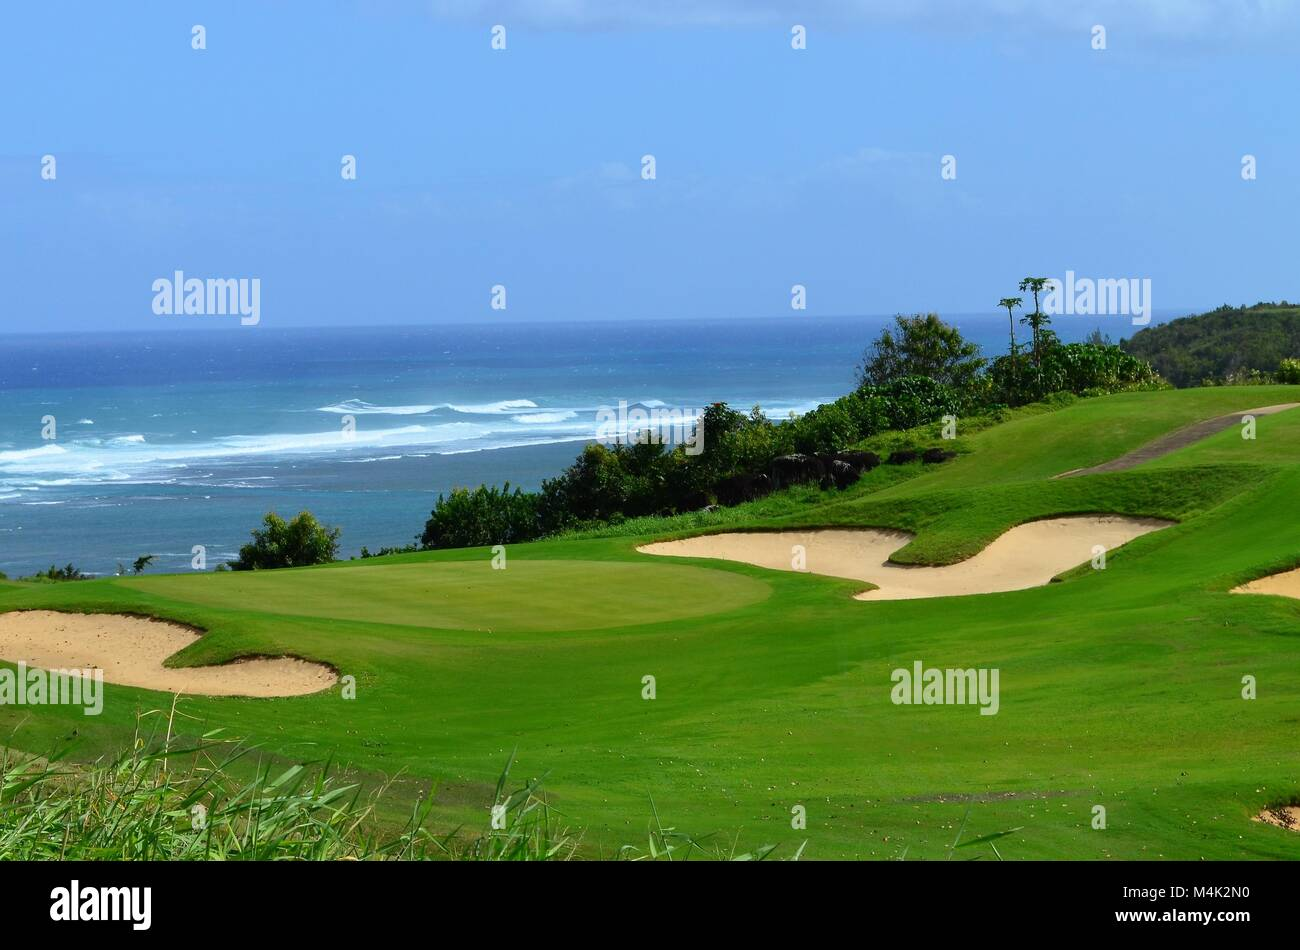 A scenic view of the white sand traps on a golf course over looking the ocean waves in the distance - Stock Image